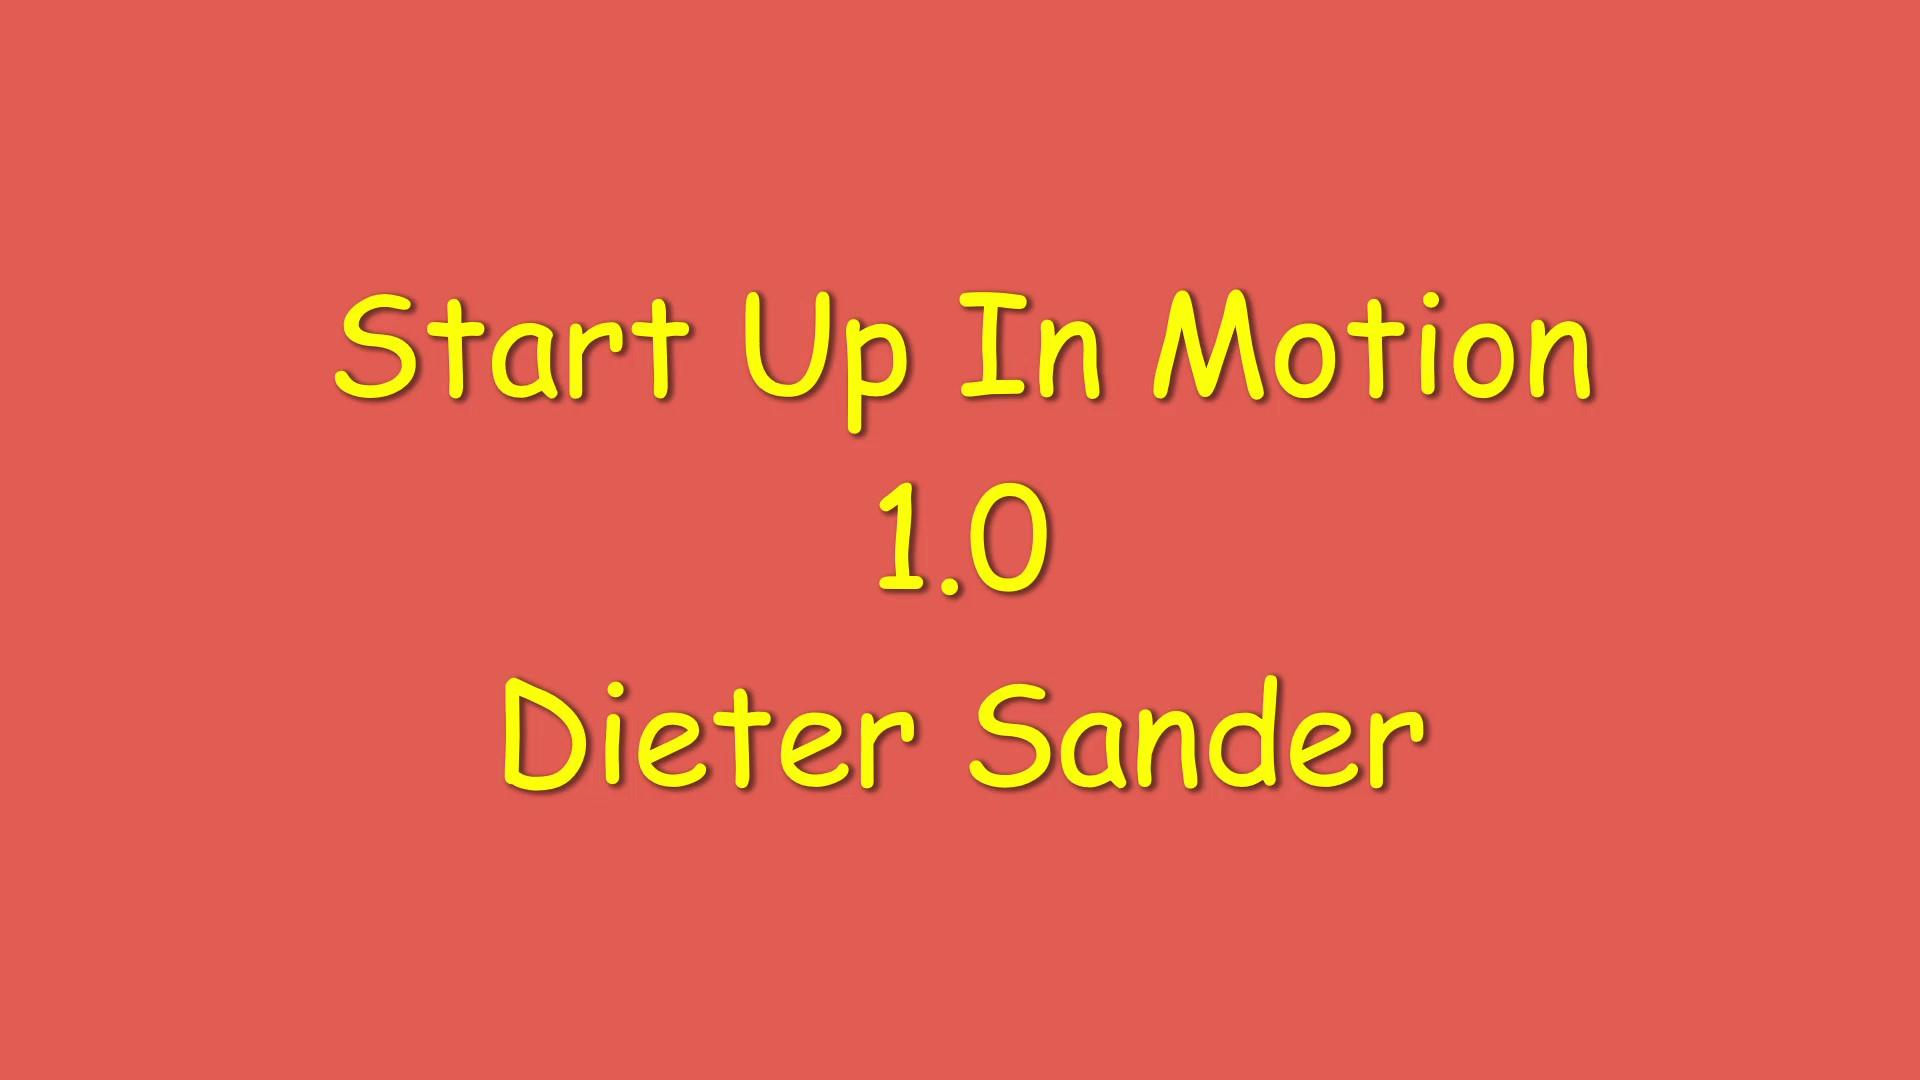 Start Up In Motion 1.0